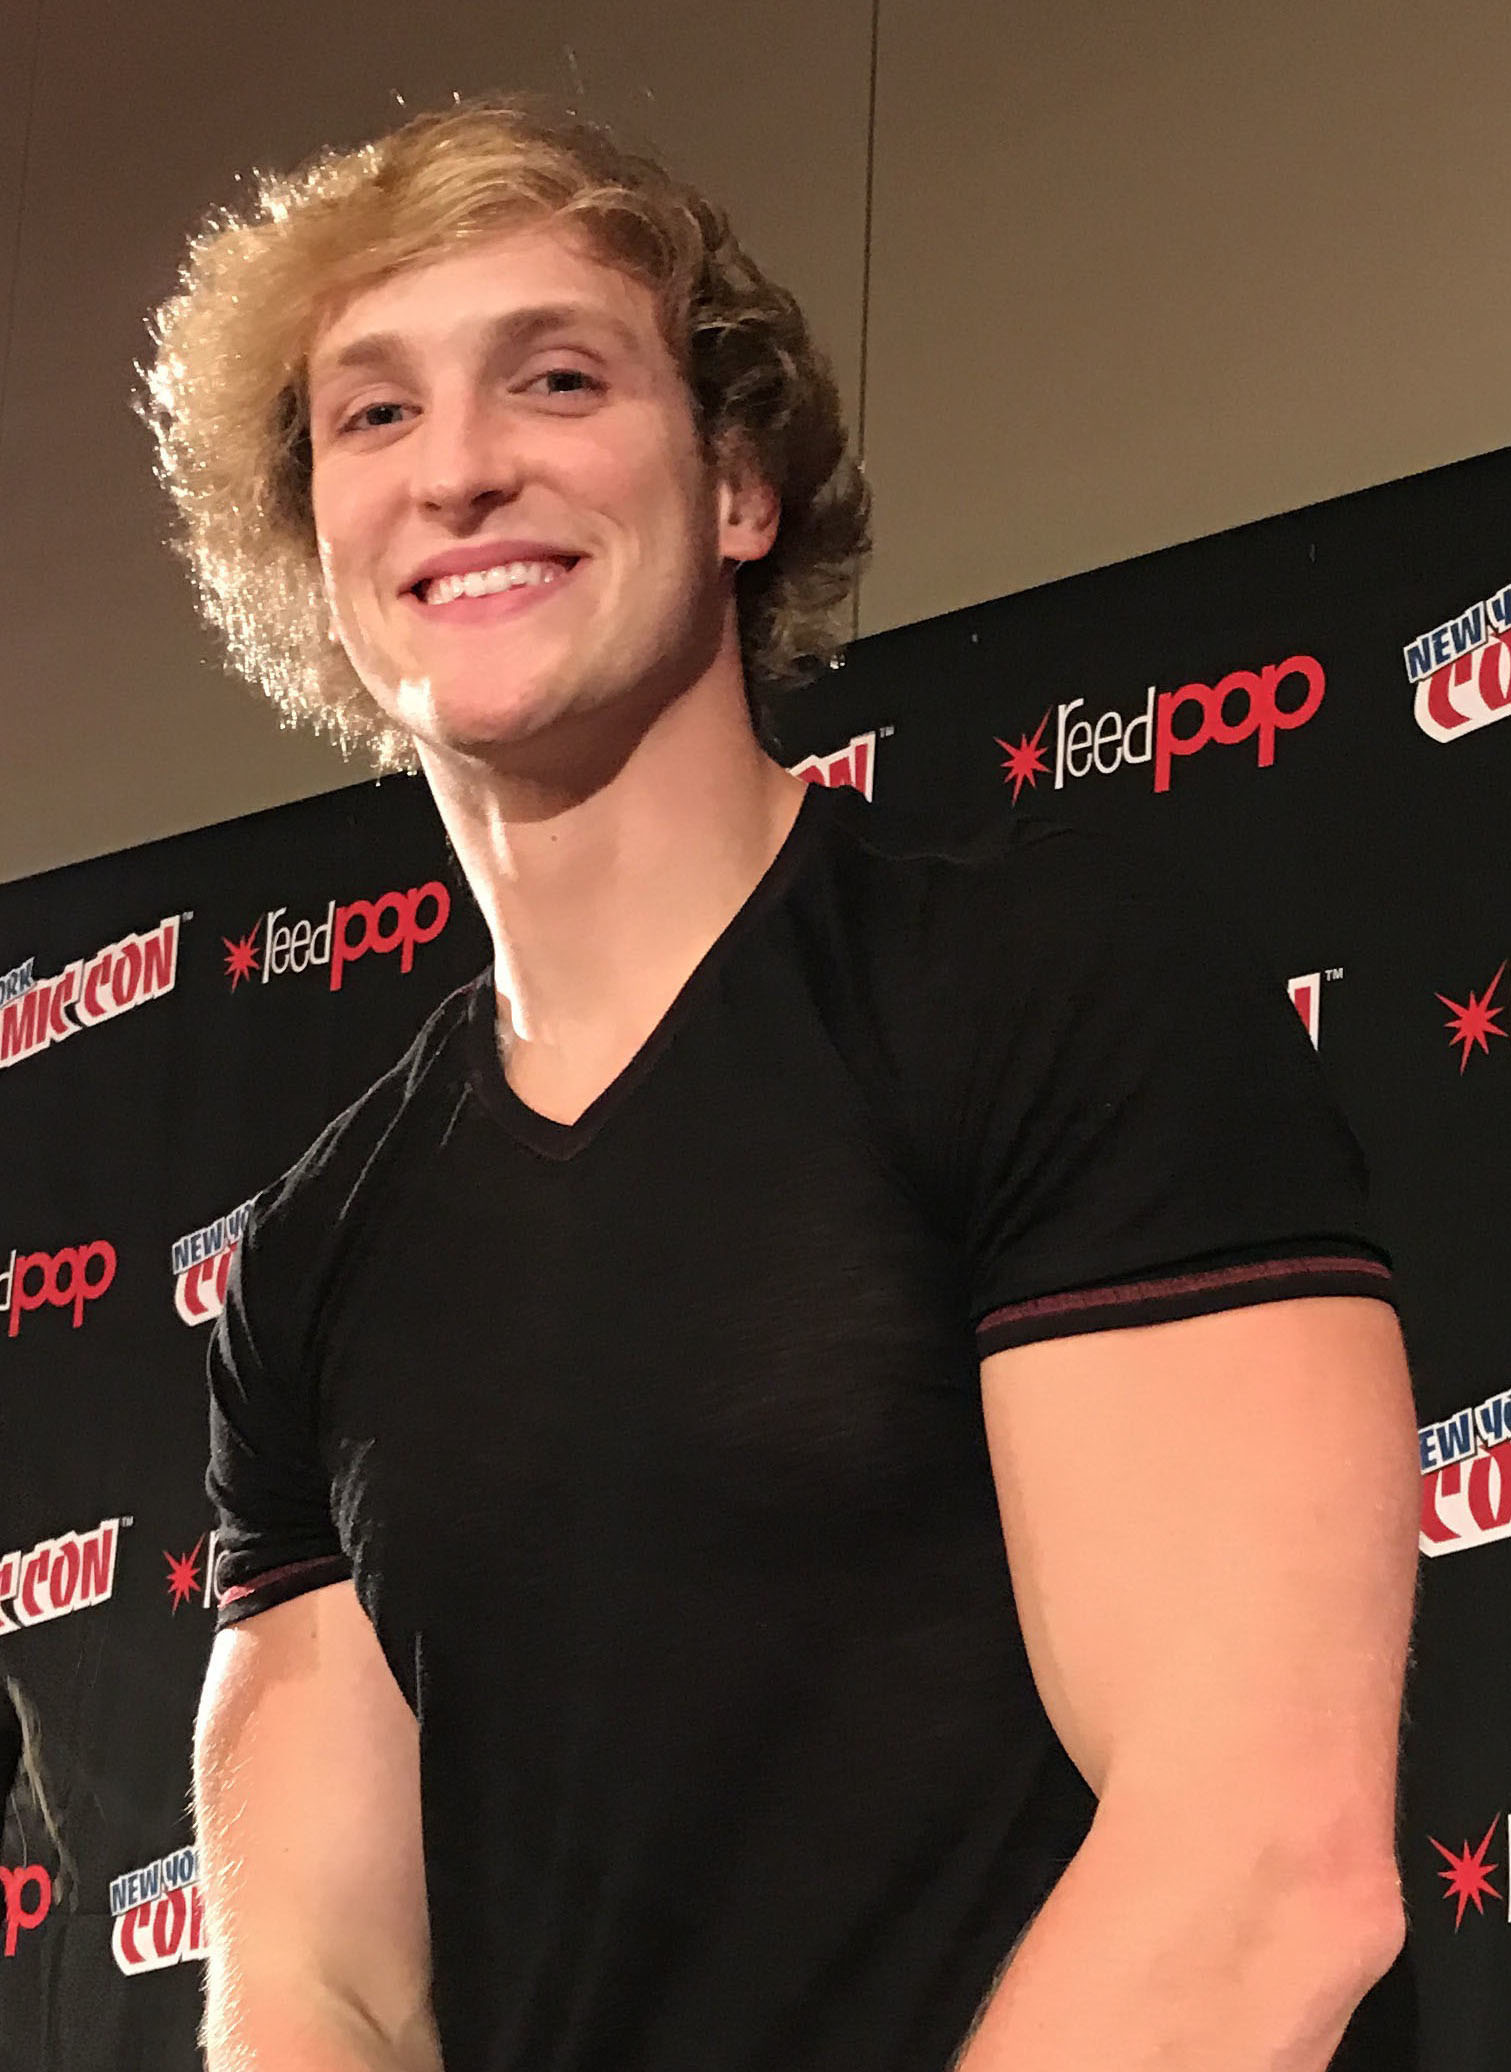 Logan Paul  - Click here for more details of the Aokigahara forest Incident involving Logan Paul (YouTuber)